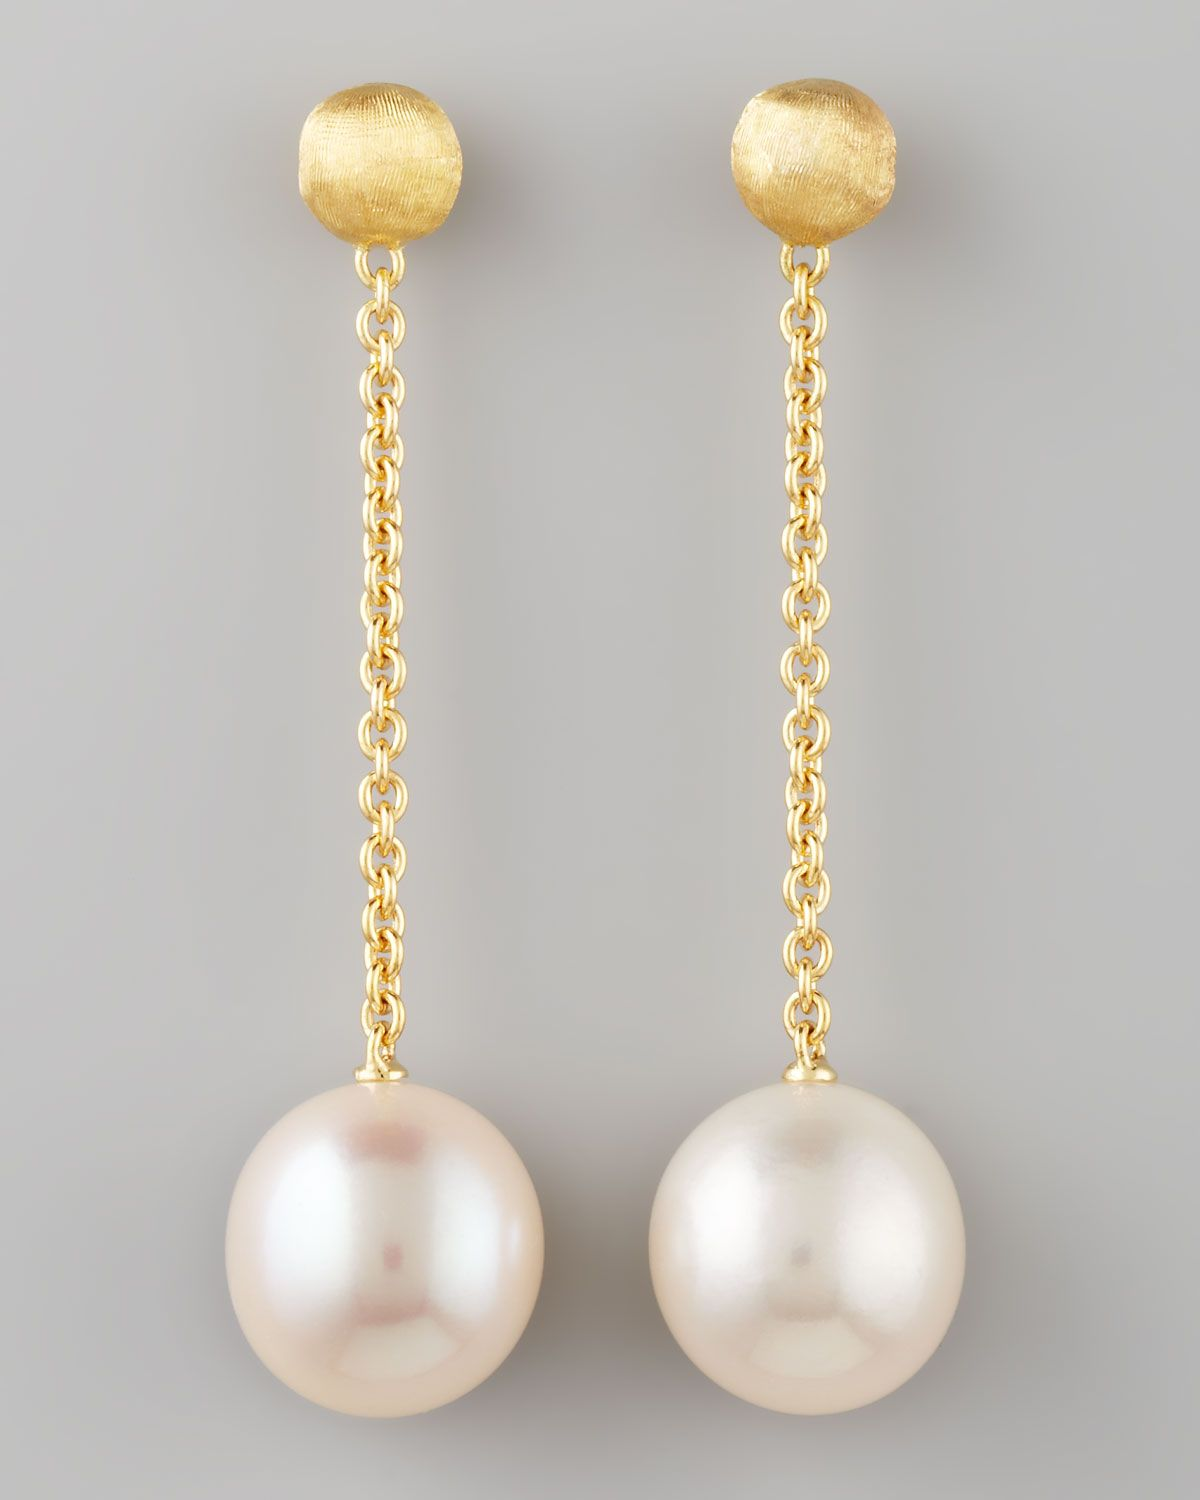 id pearl earrings at jona gold stud jewelry sale diamond for white j stone single z